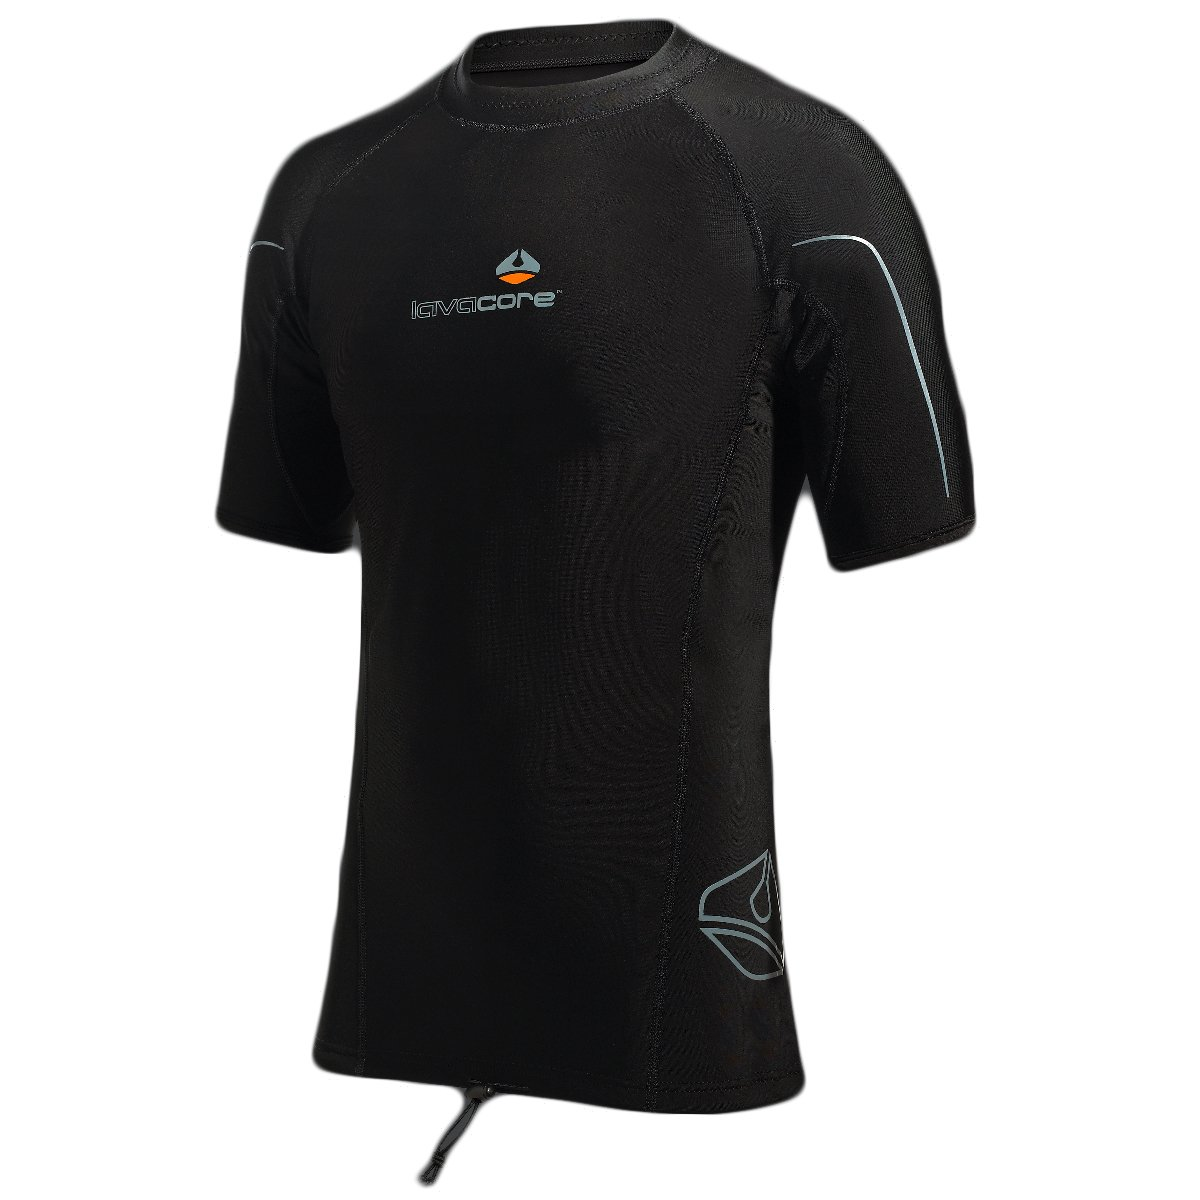 Lavacore Short Sleeve Men's Thermal Shirt - Short Sleeve Thermal Under Garment